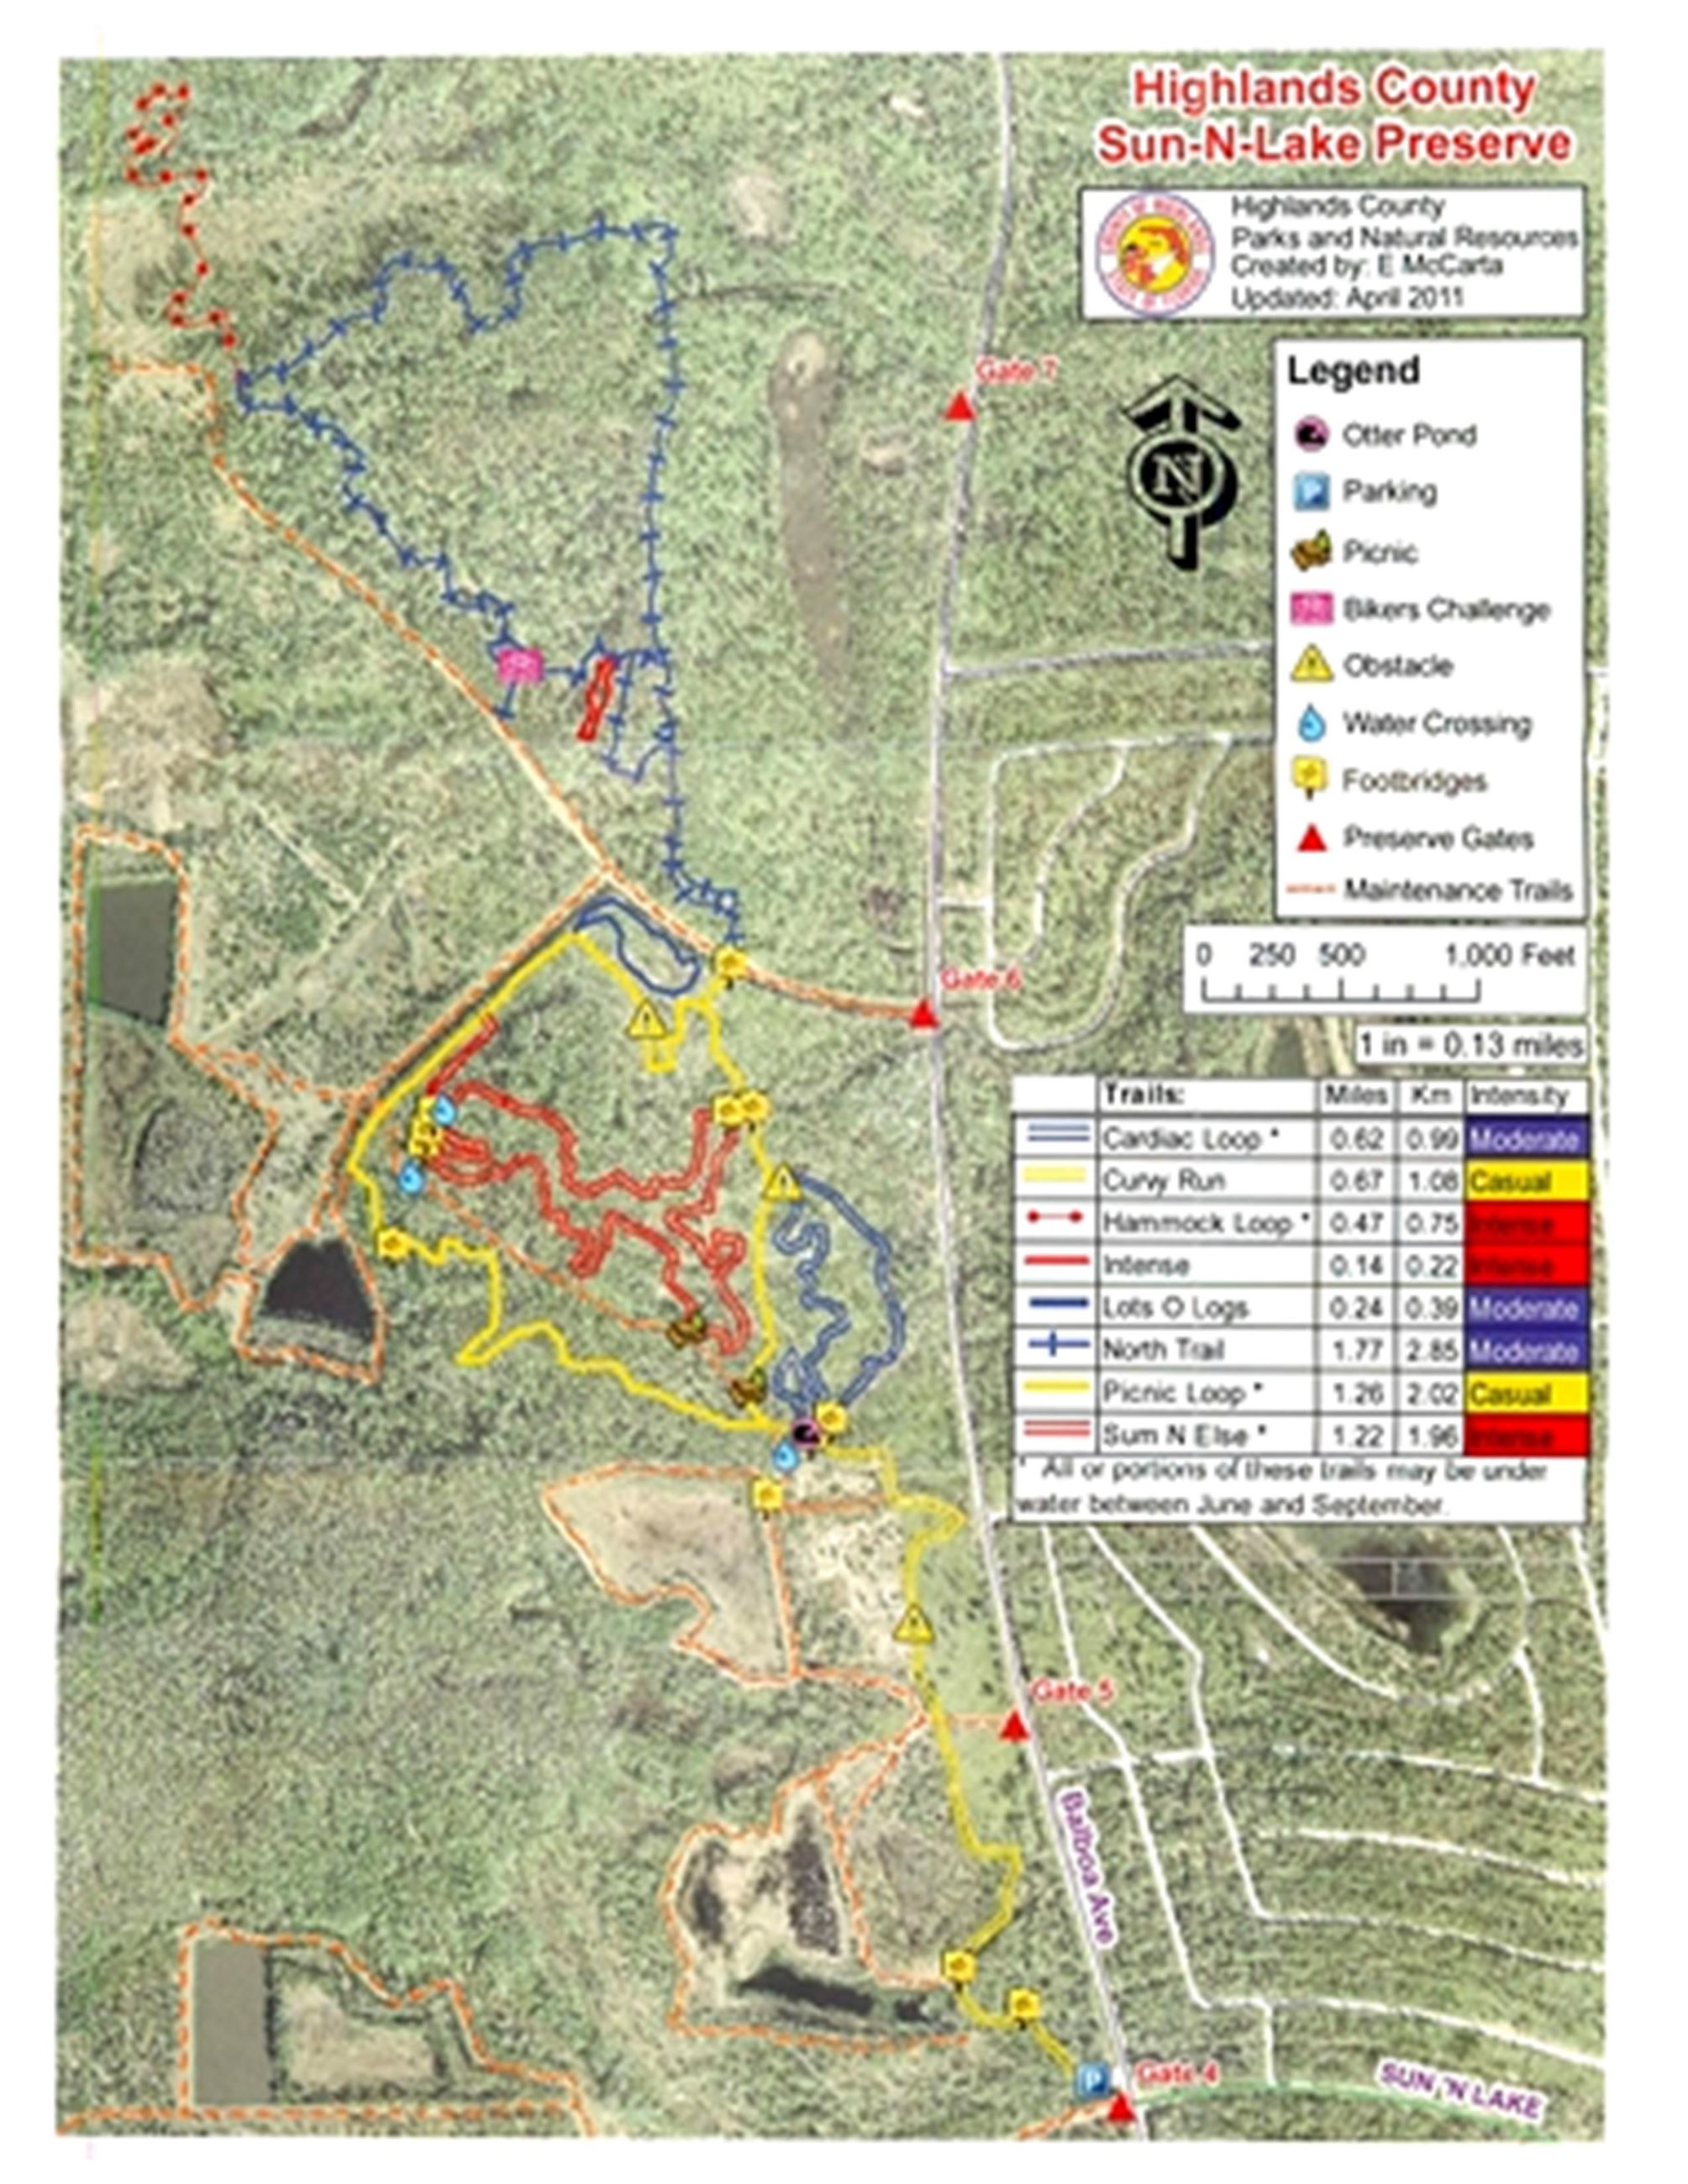 Sun n lake preserve trail map